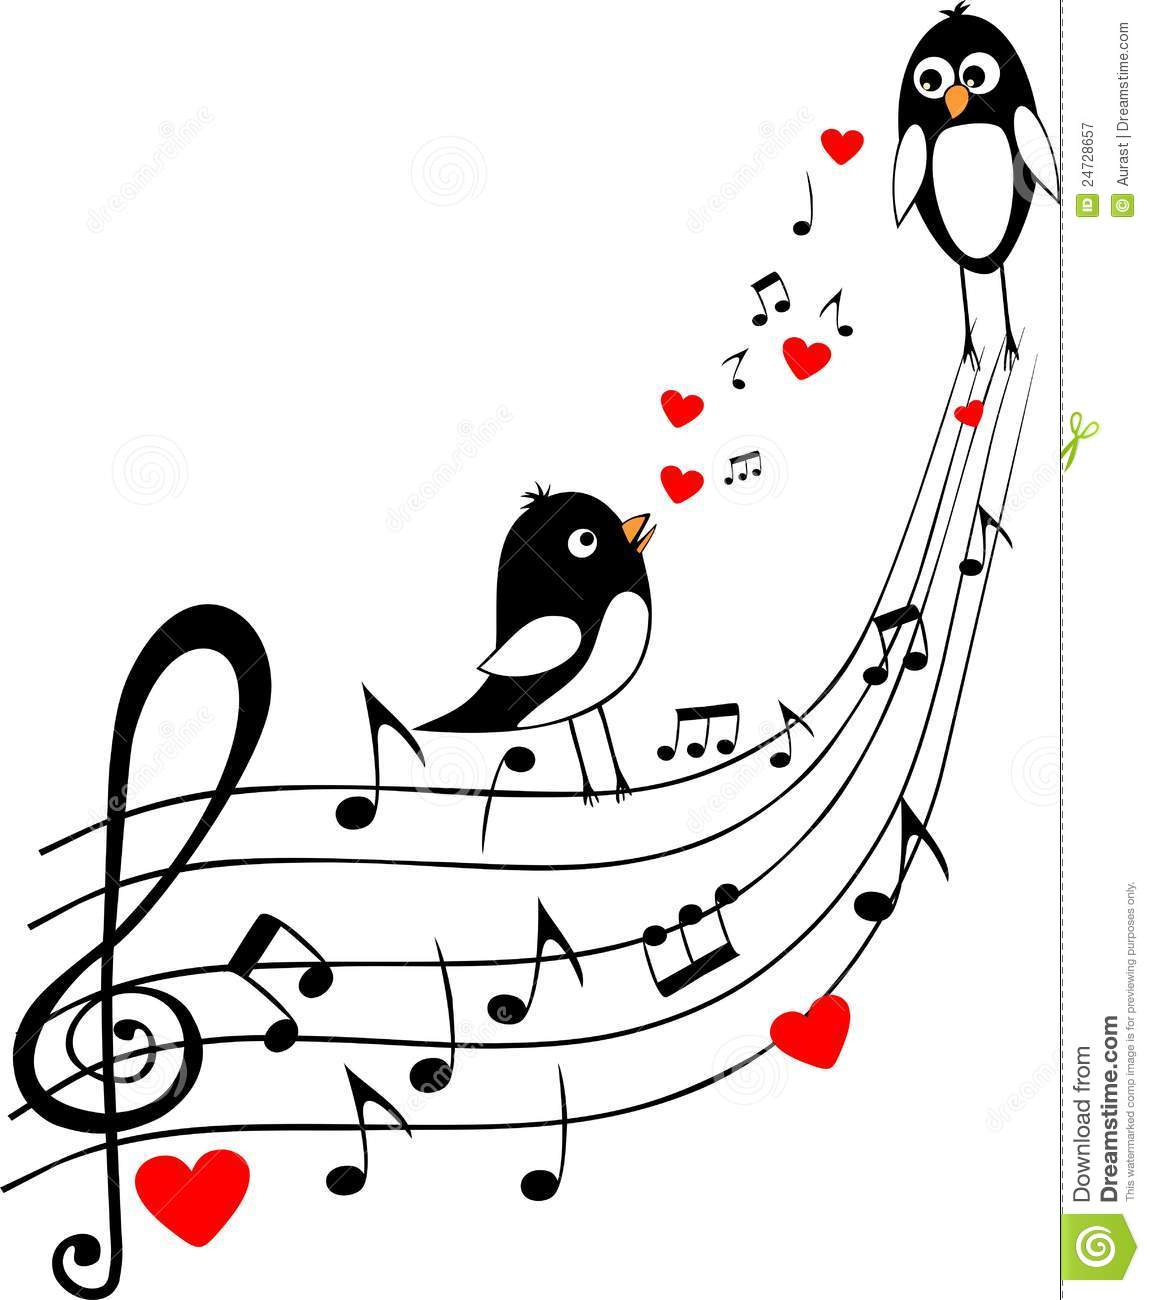 Love Score With Two Black Birds Royalty Free Stock